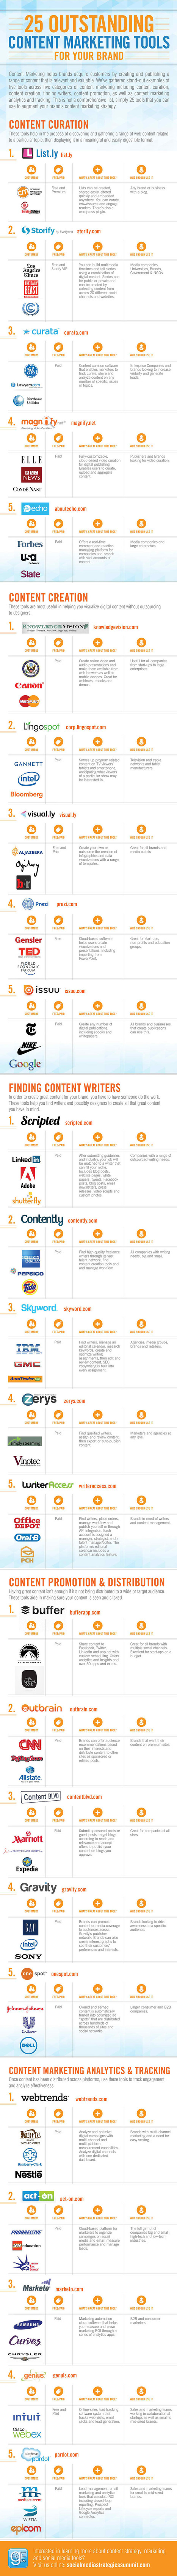 25 Tools To Boost Your Content Strategy [Infographic] - Business 2 Community | management tourism | Scoop.it